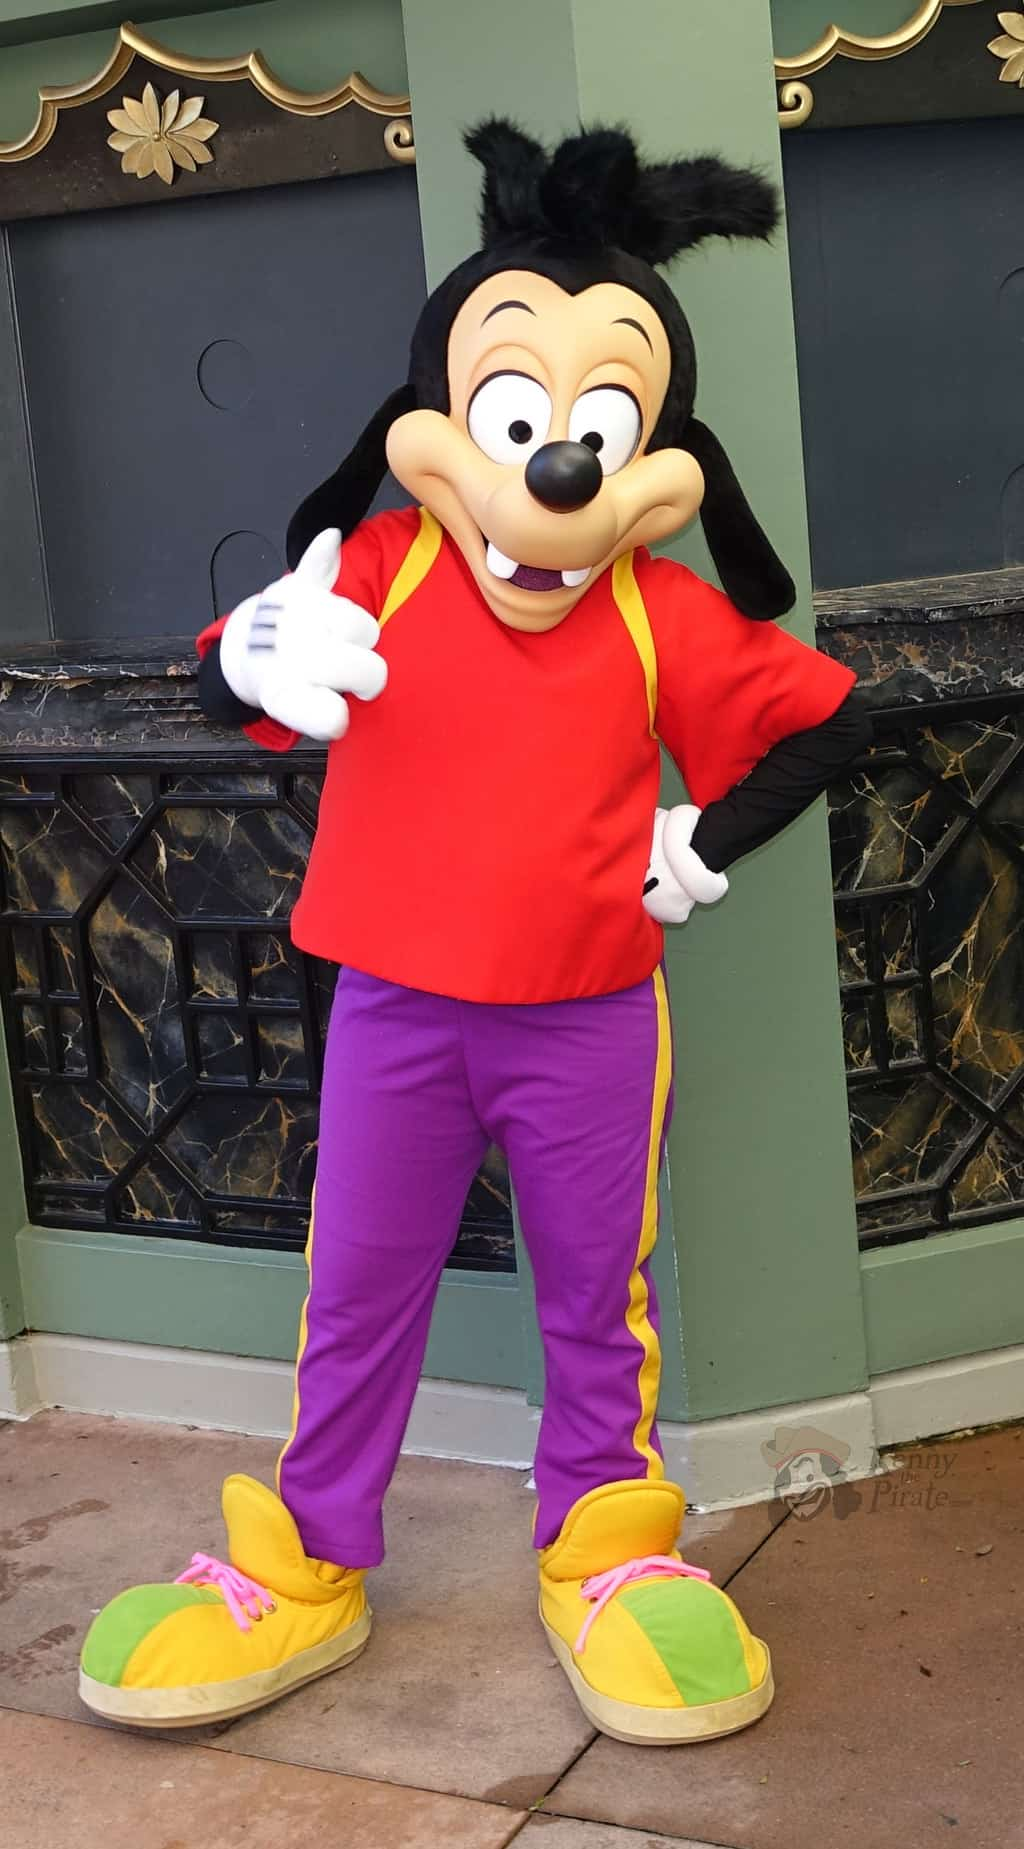 Hollywood studios character meet and greet update with an awesome hollywood studios max goof character meet and greet 1 kristyandbryce Choice Image